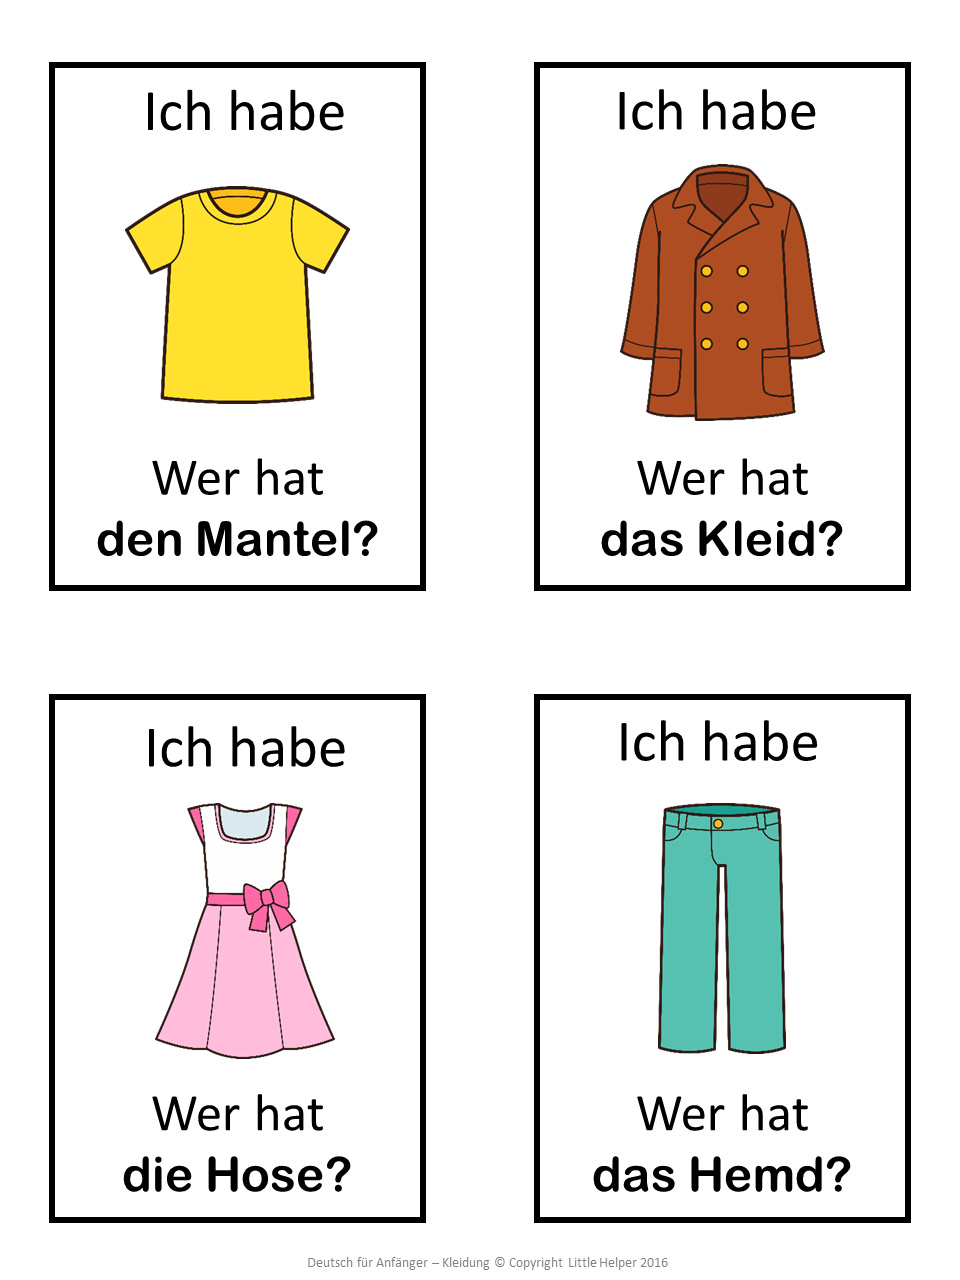 German Version Of The I Have Who Has Game This German Game Can Be Played To Practice Clothes Voca German Outfit German Words German Language Learning